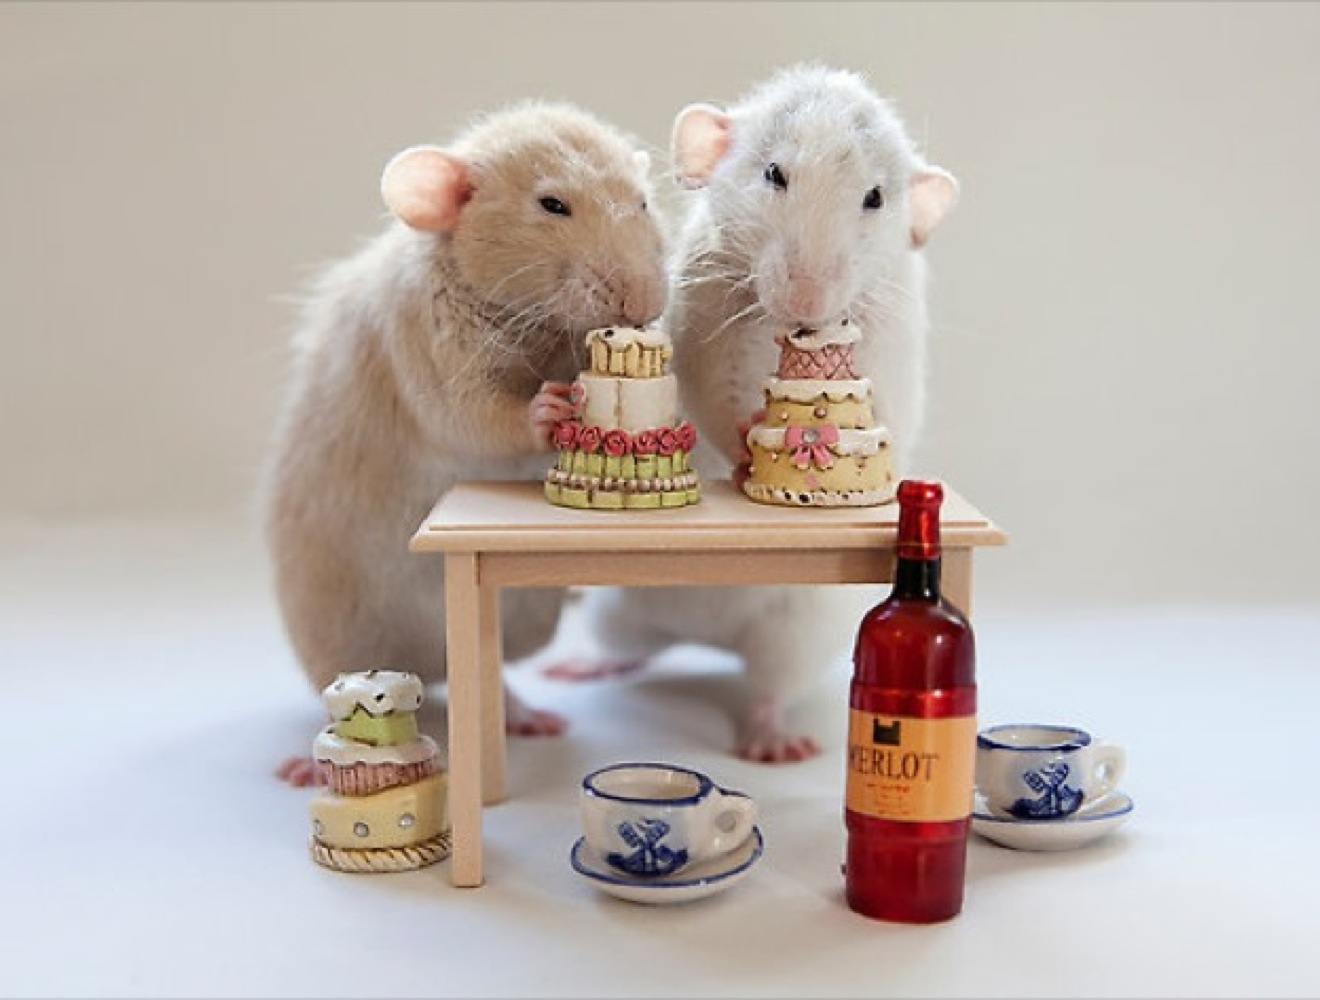 https://blog.yummypets.com/wp-content/uploads/2014/02/blog_yummypets_rat_gouter_02_14.jpg